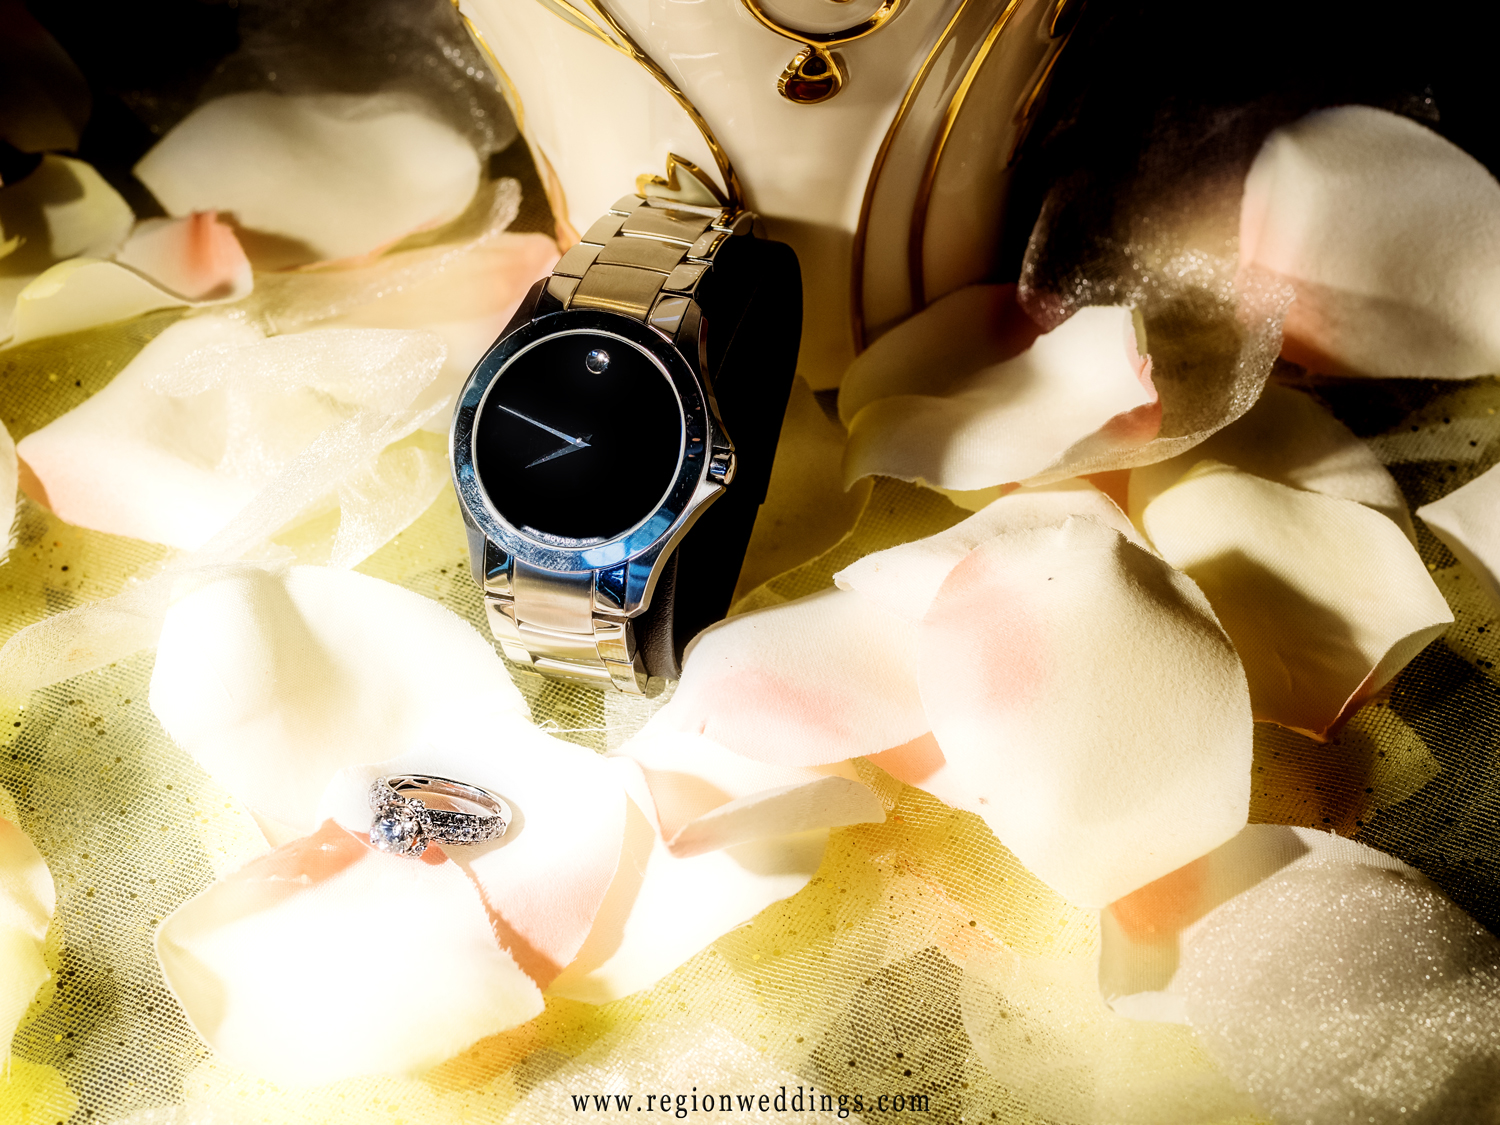 An engagement ring and luxury Swiss watch.